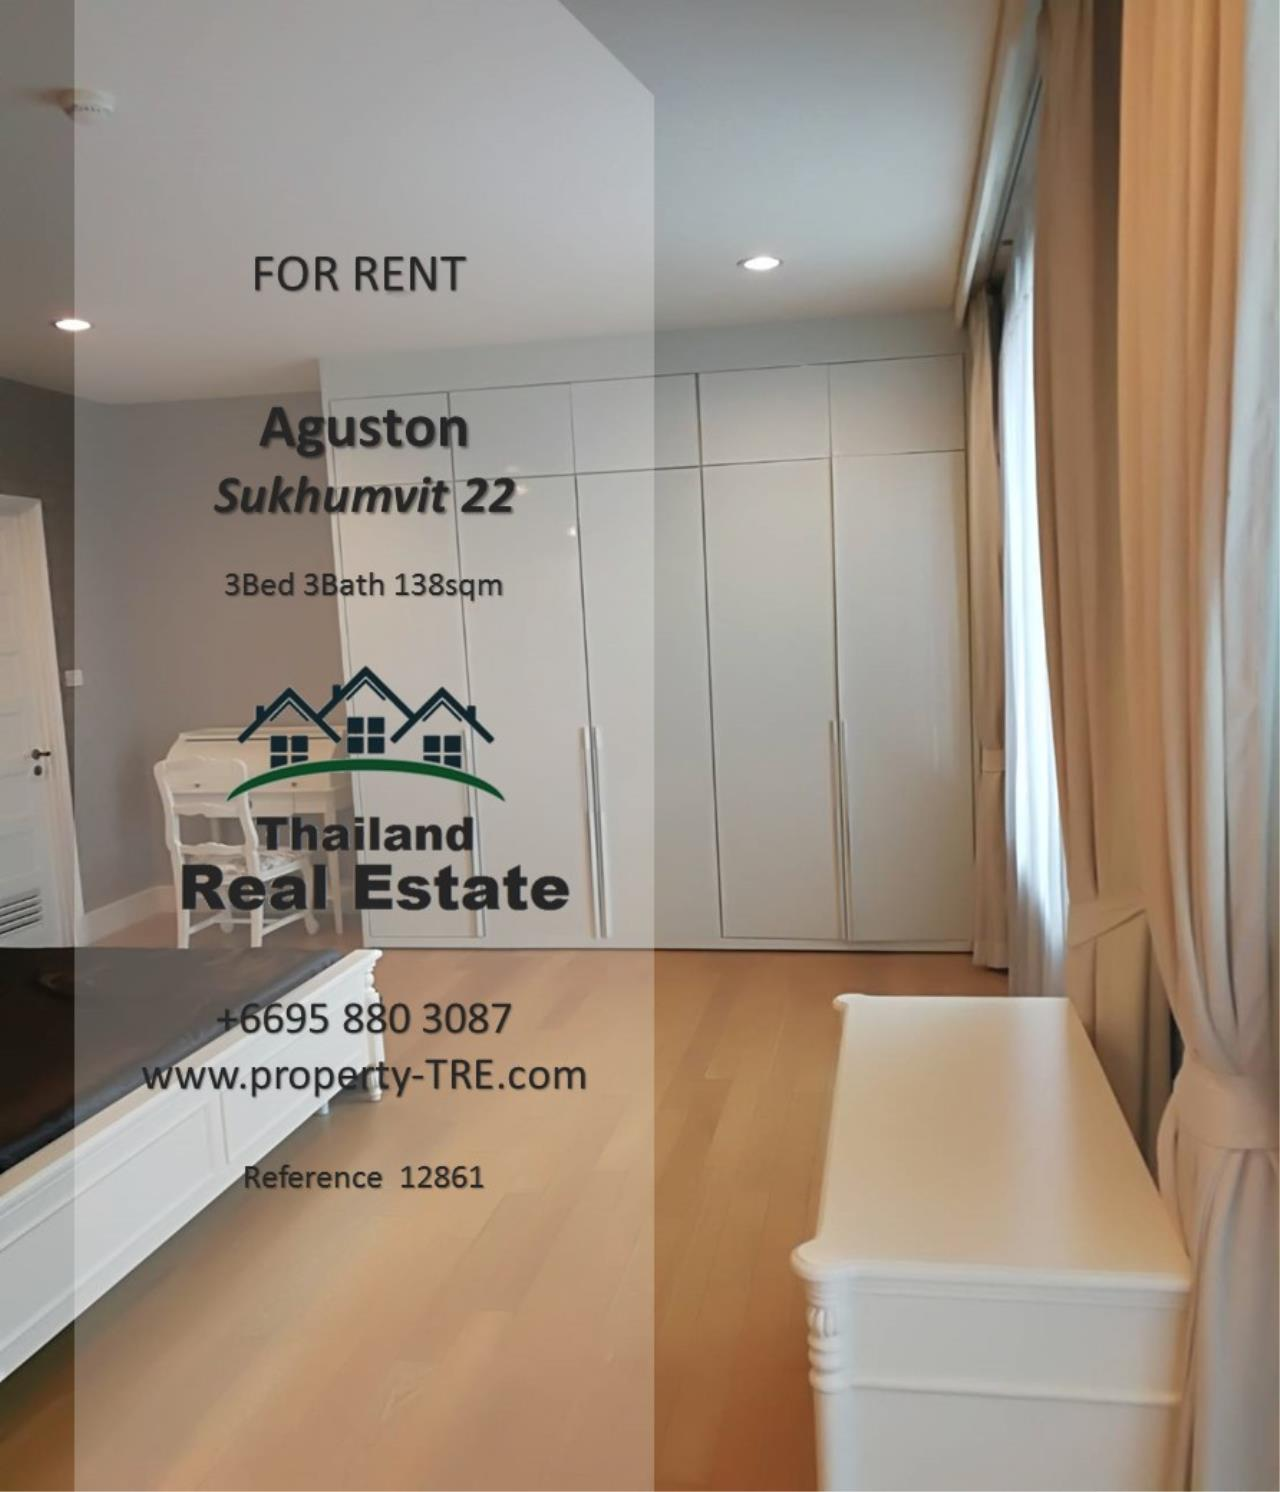 Thailand Real Estate Agency's 3 Bedroom Condo at Aguston Sukhumvit 22 near BTS Phrom Phong(12681) 5